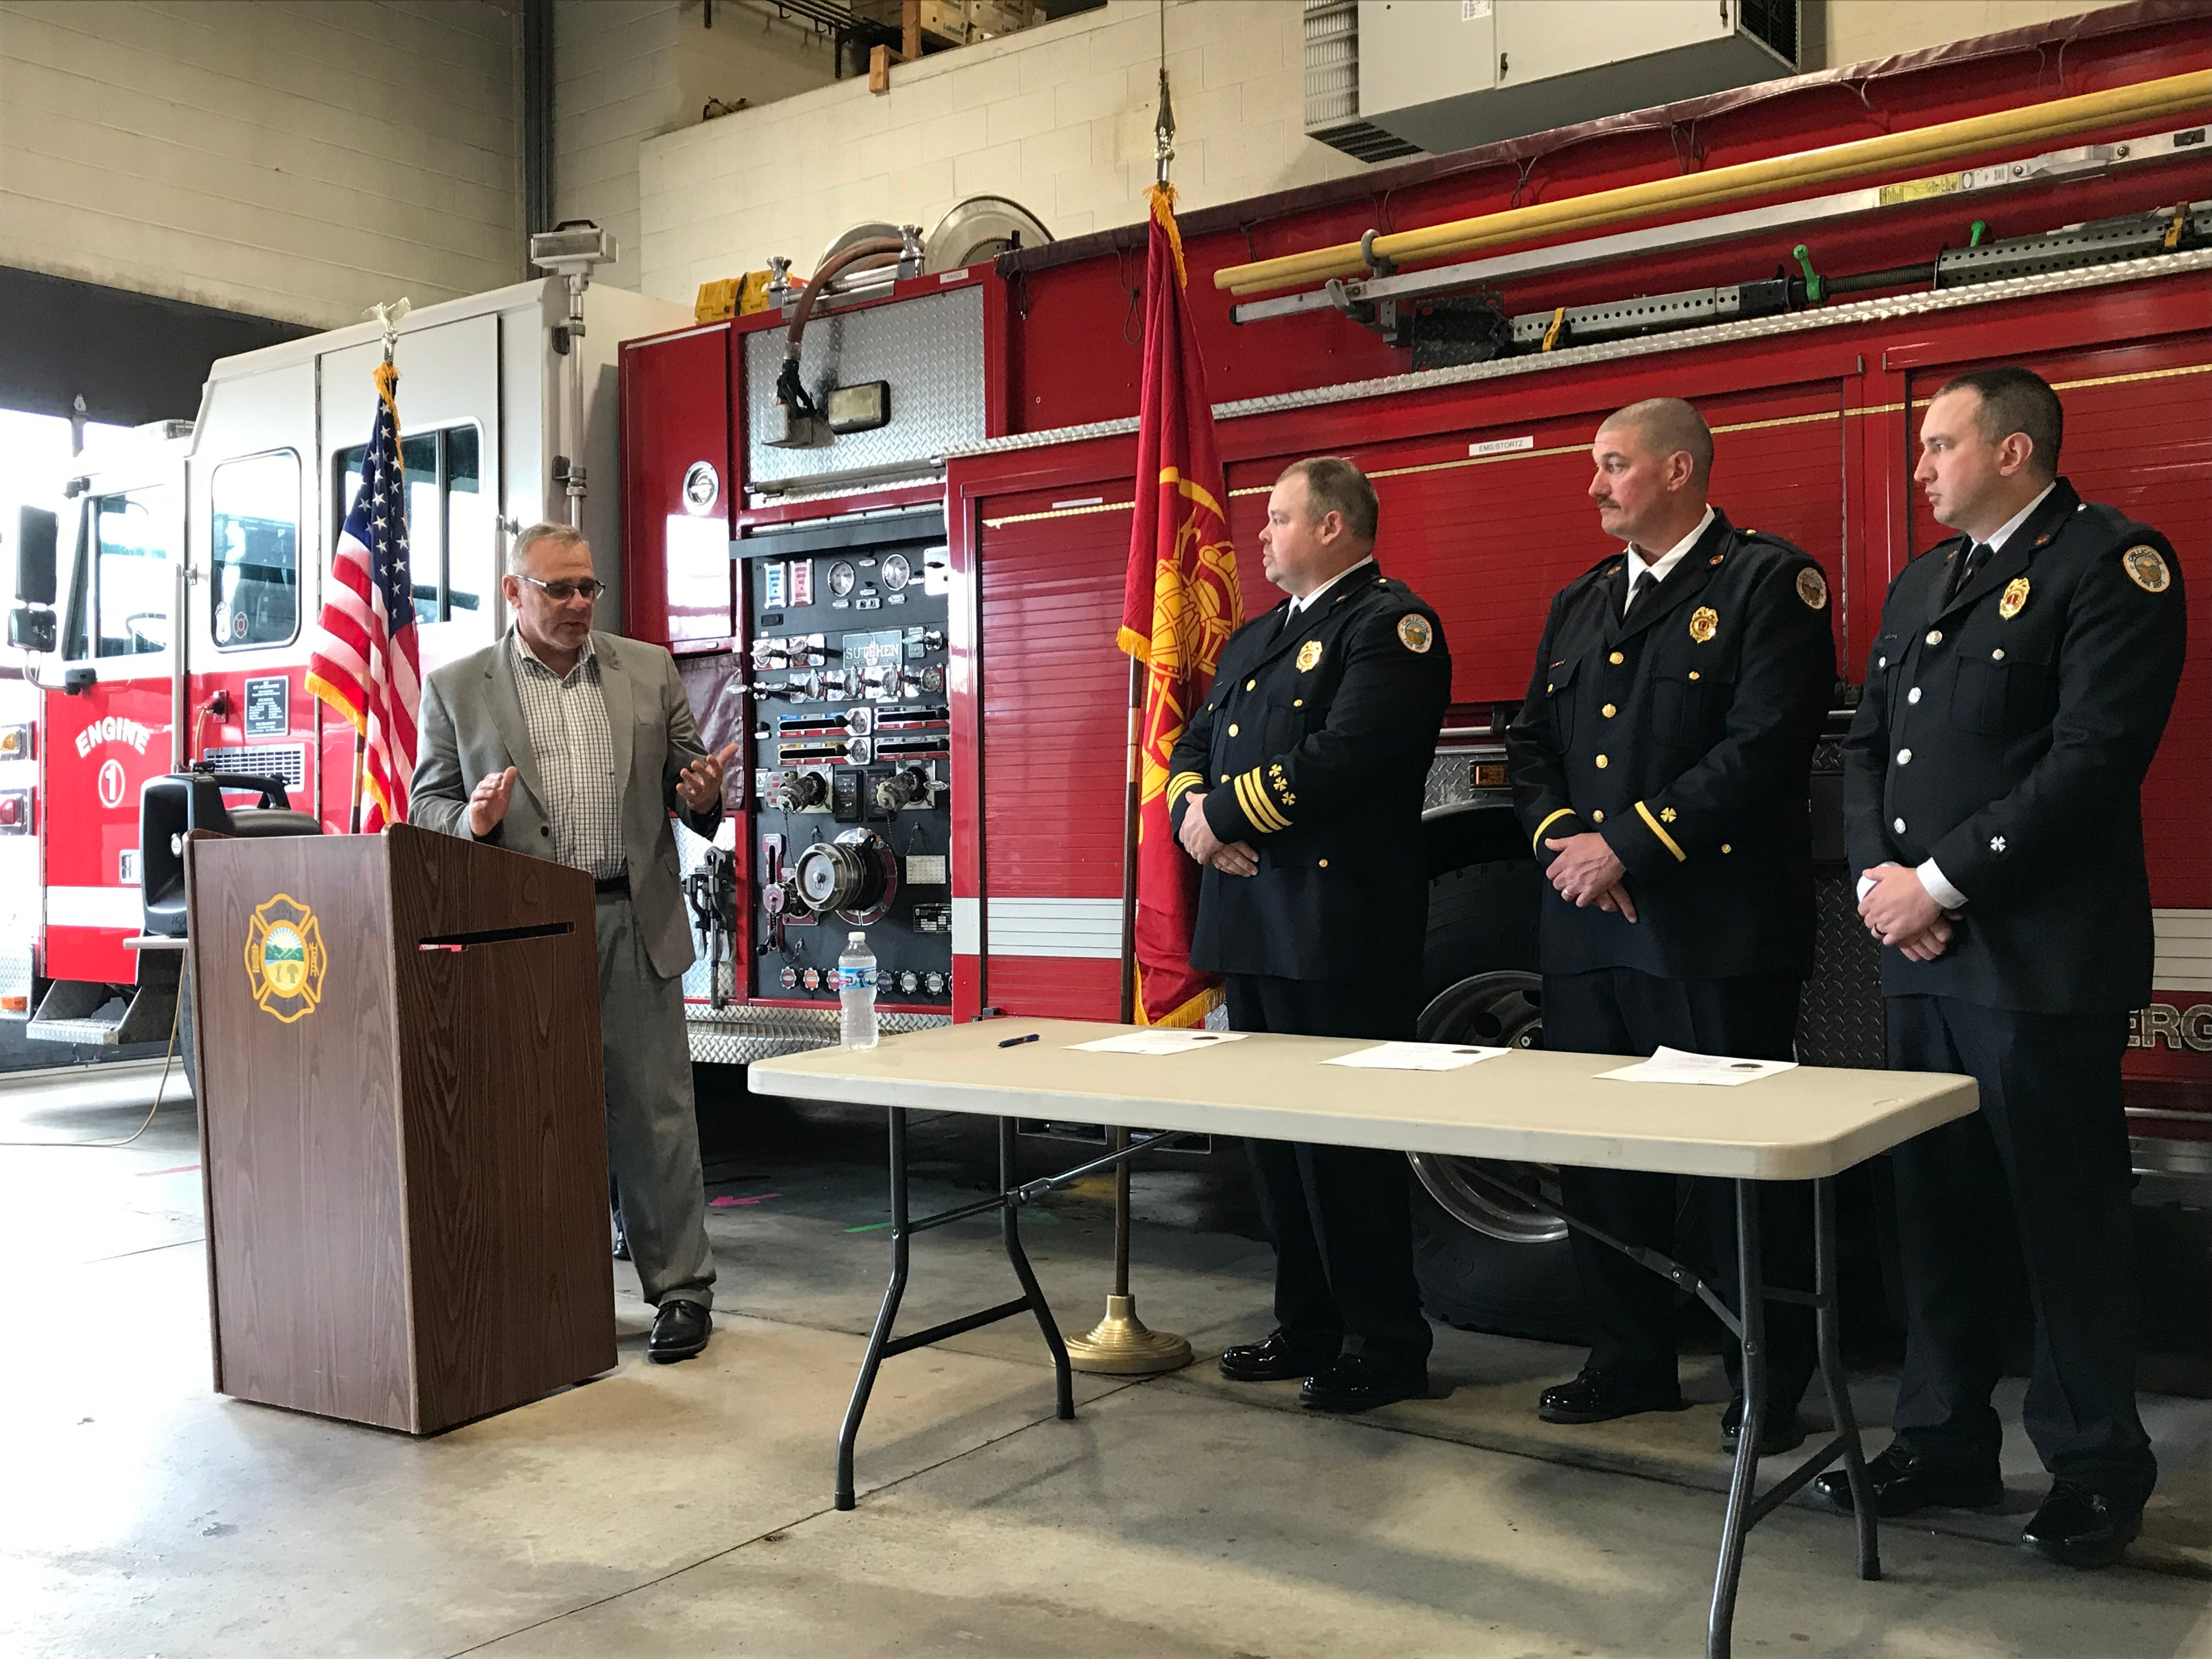 Chillicothe Public Safety Director Jeff Carman (left) offers a few words of advice for the Chillicothe Fire Department's newly promoted leadership (left to right) Assistant Fire Chief Aaron Knotts, Capt. Ryan Wade, and Lt. Nick Mathias.